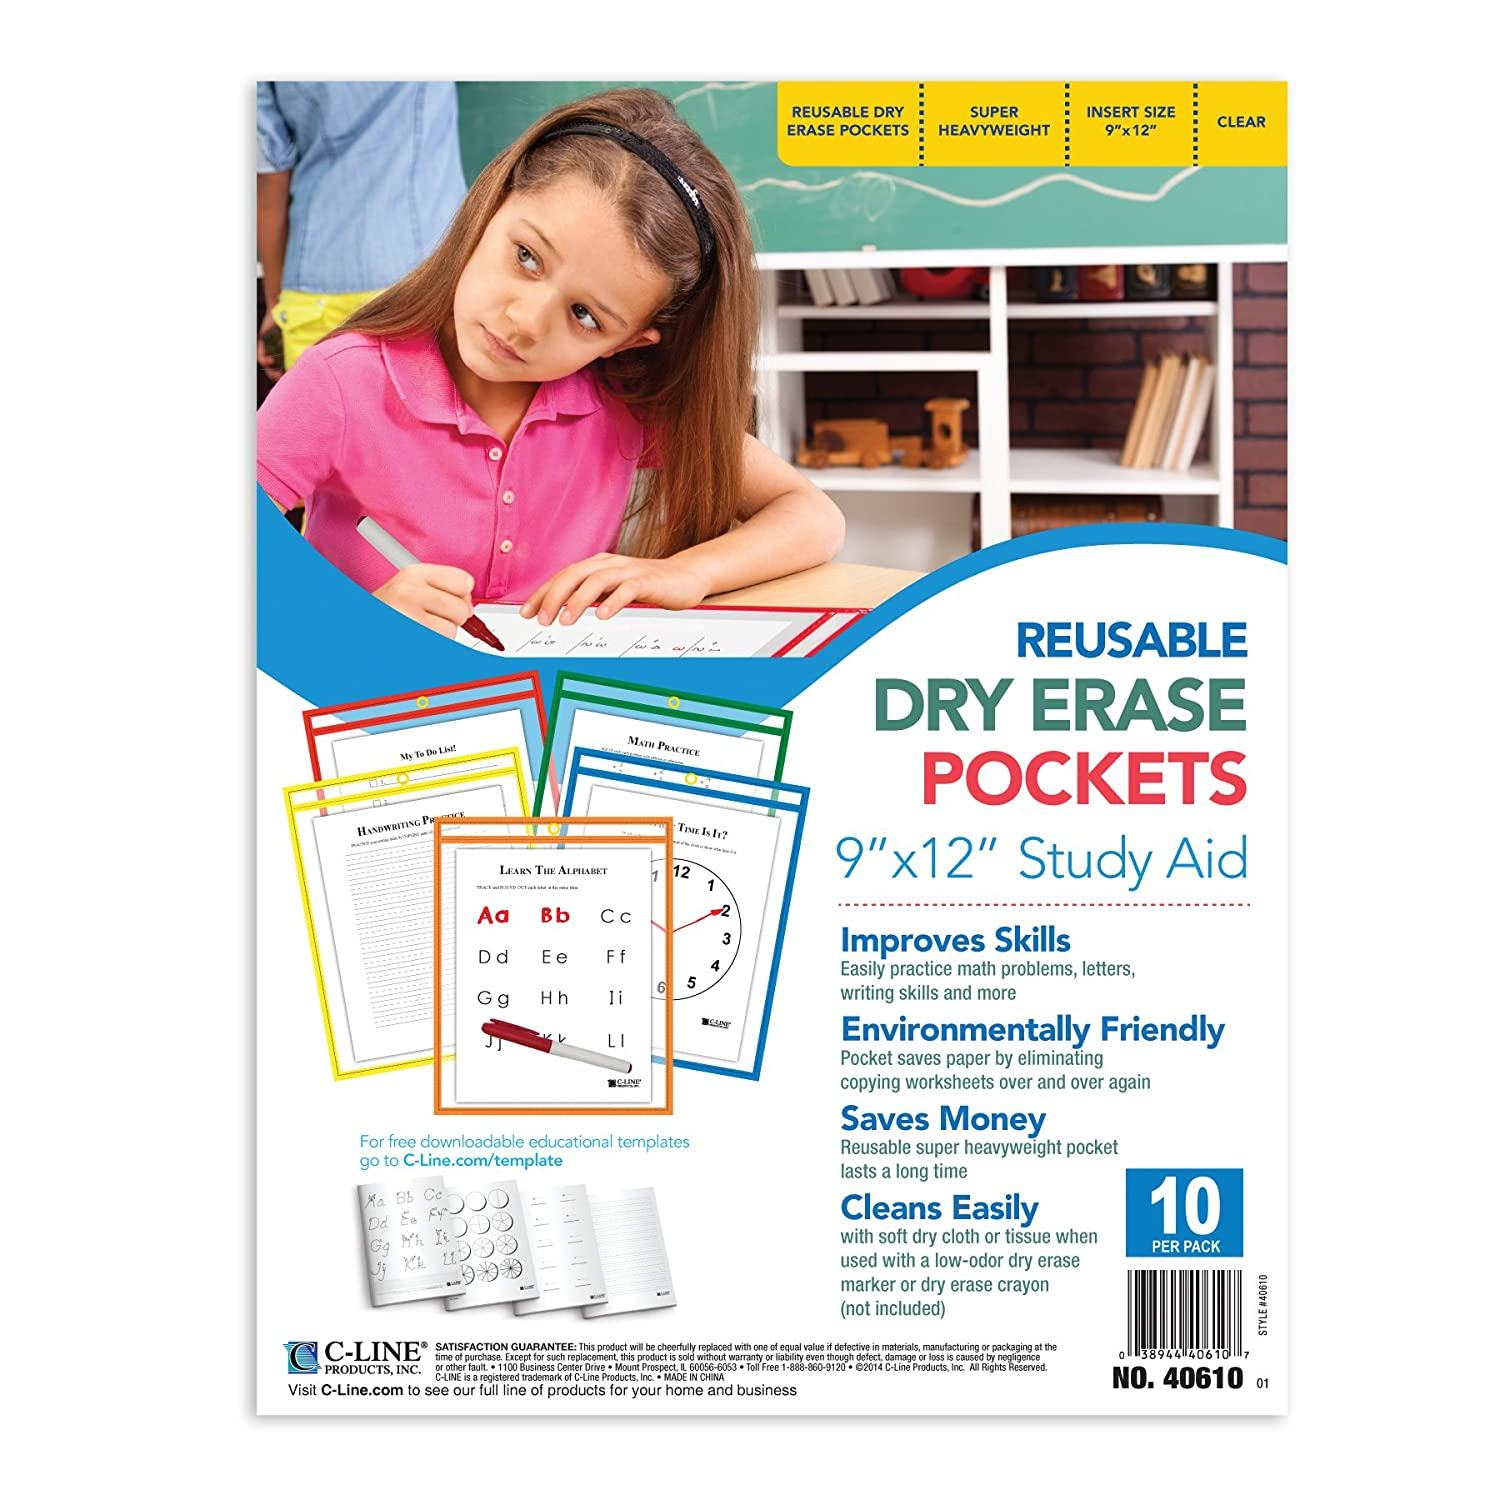 Great 10 Envelope Template Indesign Thin 1st Birthday Invitation Template Square 2 Page Resume Header 2013 Resume Writing Trends Old 2014 Planner Template White2014 Sample Resume Templates Amazon.com : C Line Reusable Dry Erase Pockets, 9 X 12 Inches ..